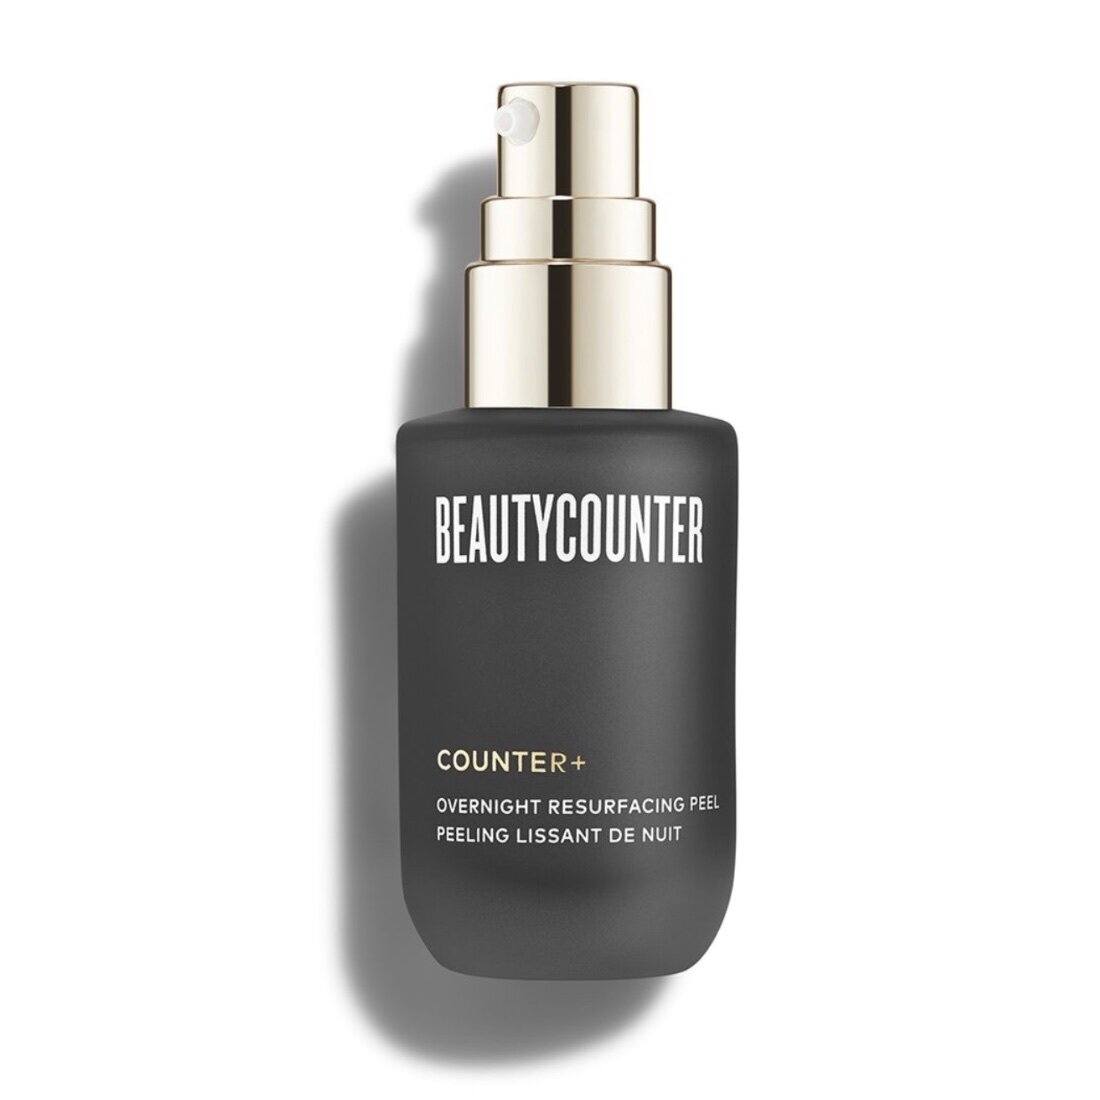 BEAUTYCOUNTER Overnight Rejuvenating Peel - Good morning, glow. Formulated with 15 botanically-derived acids, this leave-on AHA/BHA peel improves skin texture and minimizes the appearance of pores, fine lines, and dark spots without irritation or over-drying. Glycolic, lactic, and malic acids clear away dull surface skin cells, while hyaluronic acid and essential fatty acids soothe and nourish to reveal a brighter, more youthful-looking complexion.This peel is formulated without synthetic fragrances, PEGs, and formaldehyde-based preservatives commonly found in peels.Shop RISK FREE! Return anything with no questions asked within 60 days. You even get return shipping free!SUBSCRIBE to my newsletter and get a $15 Gift Certificate for Beautycounter products.